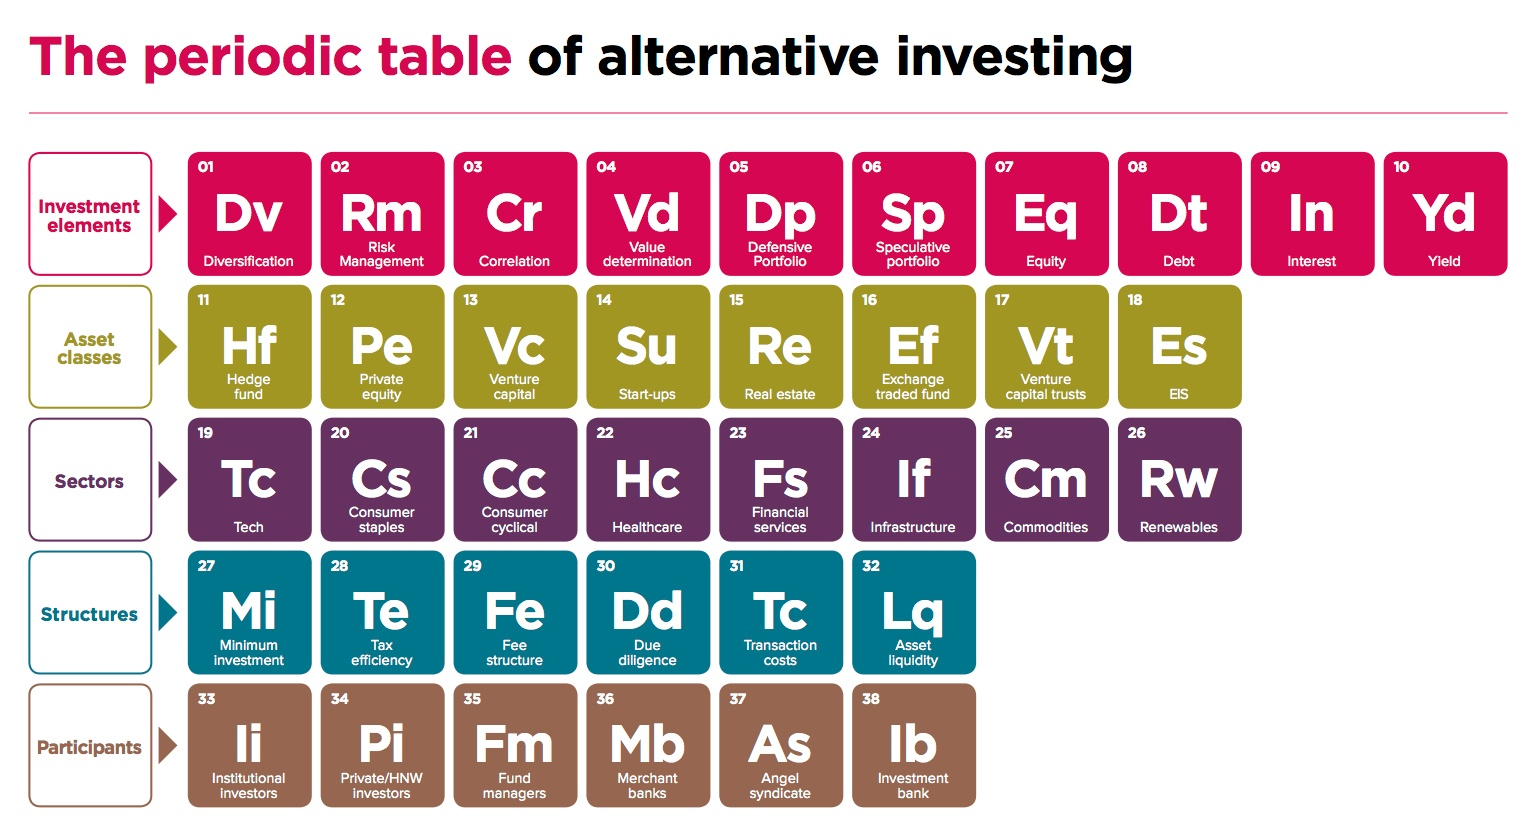 Periodic Table of Alternative Investing